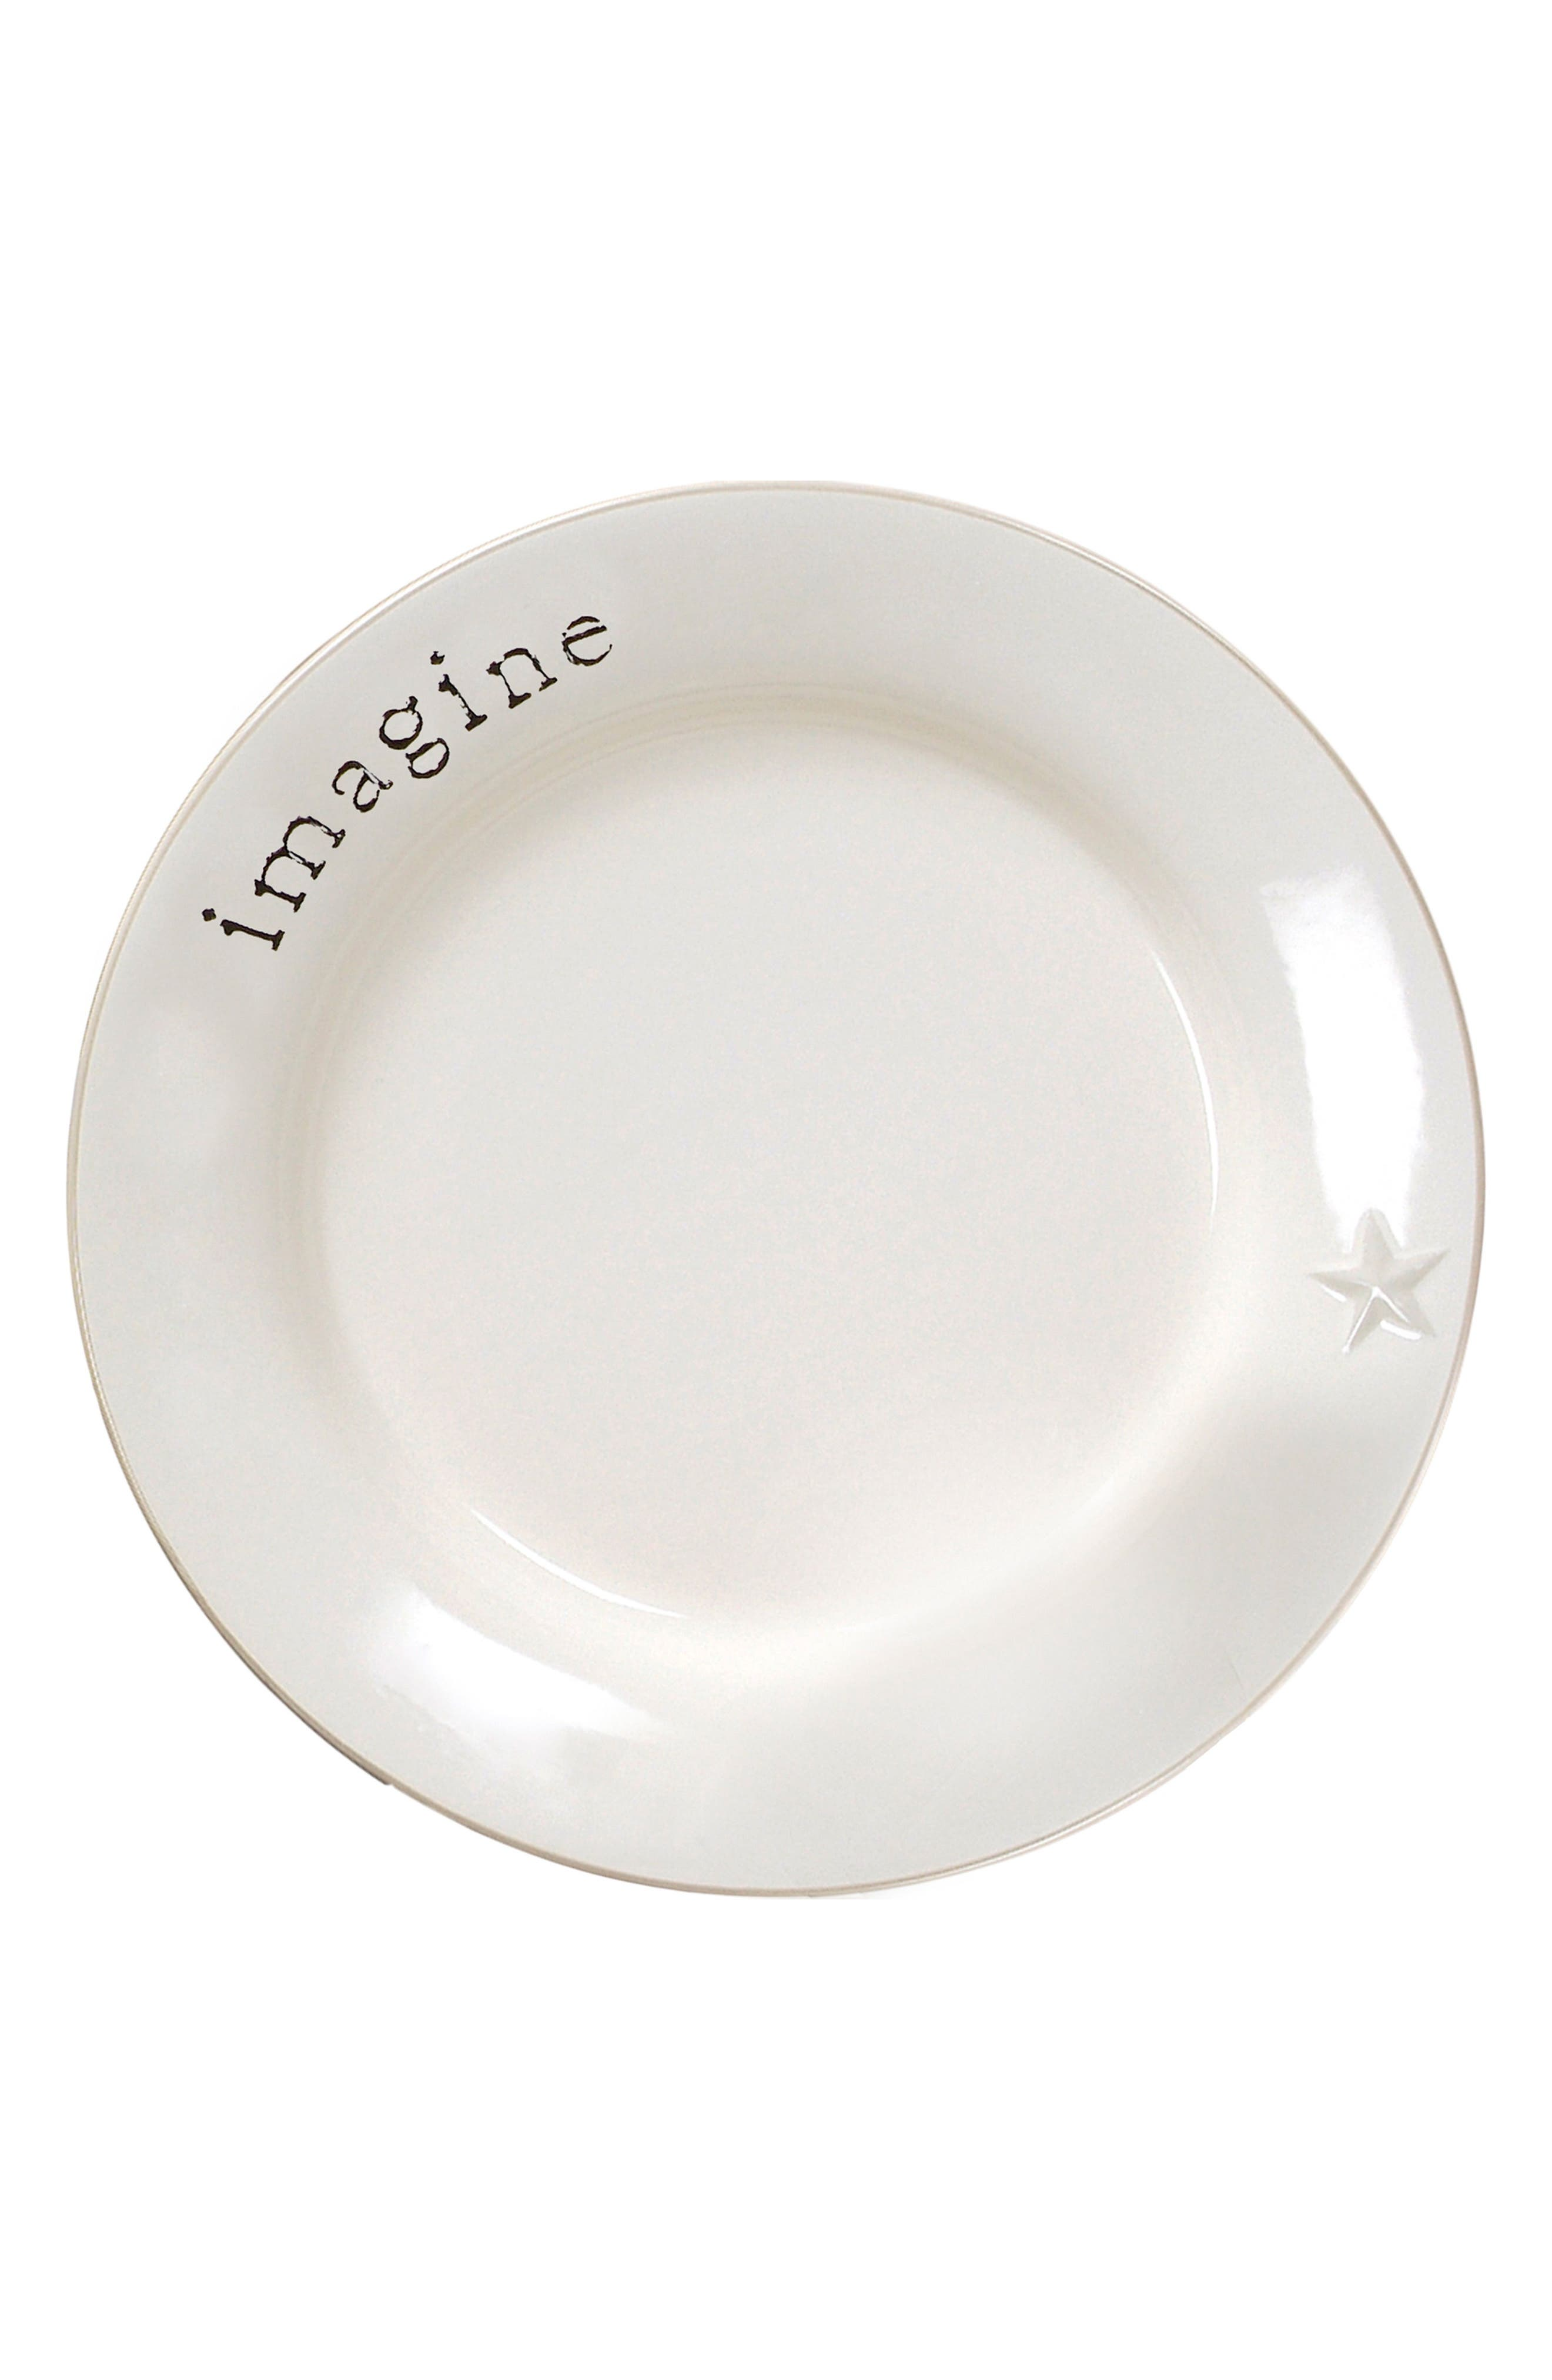 Word Expressions Dinner Plate,                         Main,                         color, 100